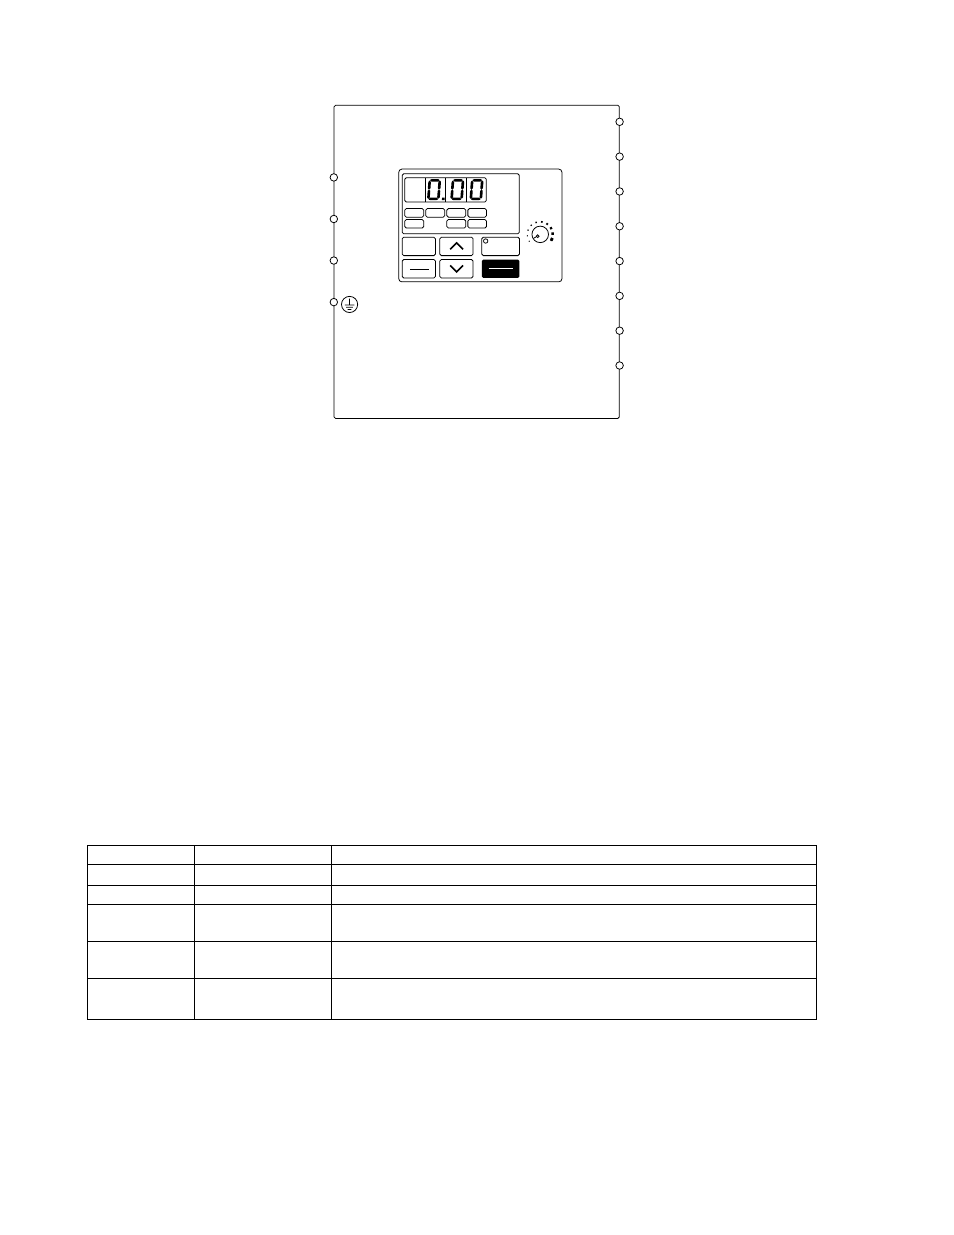 Yaskawa V7 Wiring Diagram Block And Schematic Diagrams Drives User Manual Page 9 158 Also For V74x Rh Manualsdir Com Residential Electrical Varispeed F7